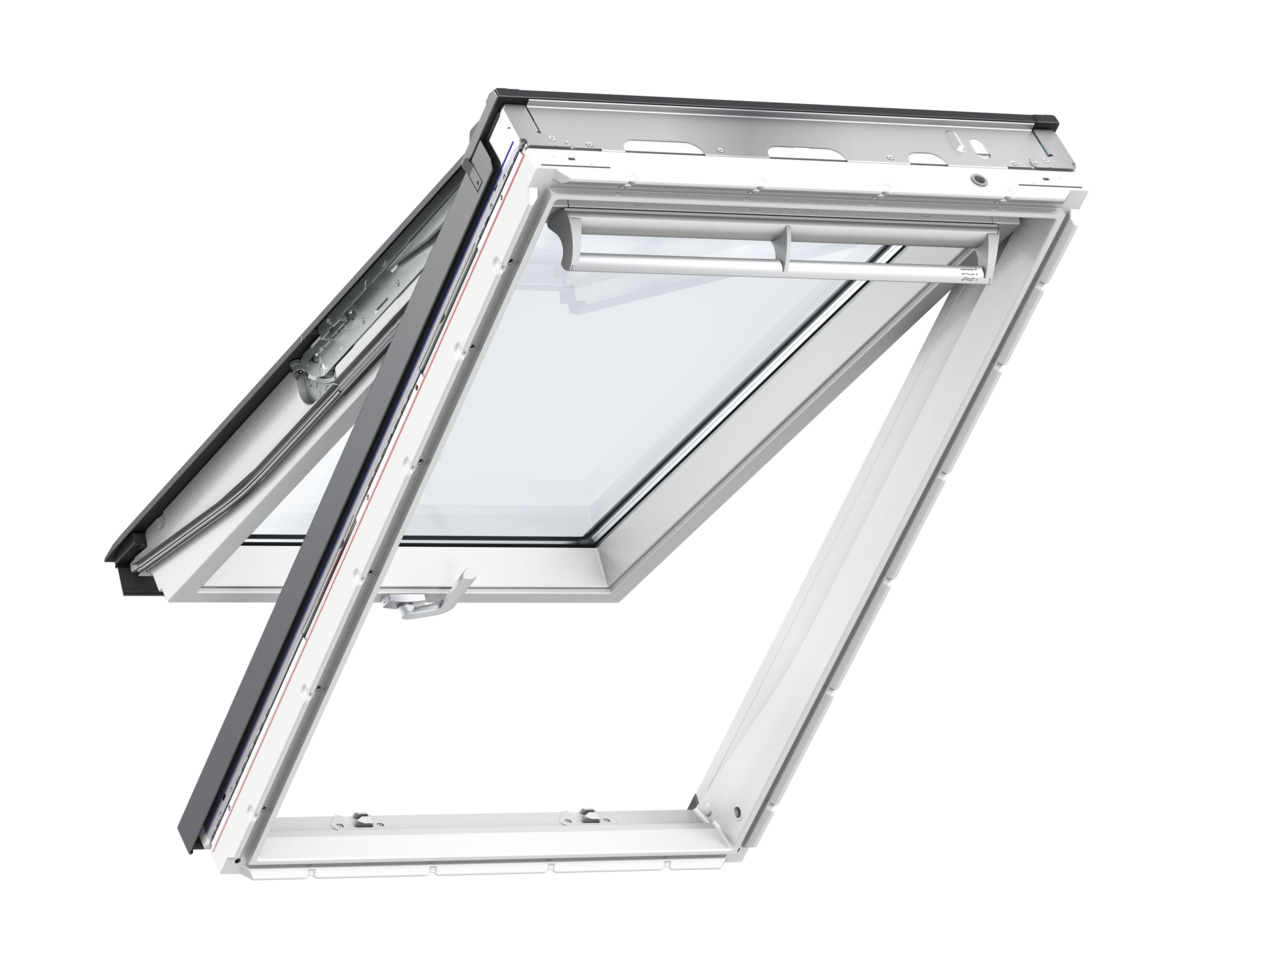 Velux GPU CK06 550 x 1180mm Top Hung Standard 70Pane Roof Window - White Polyurethane